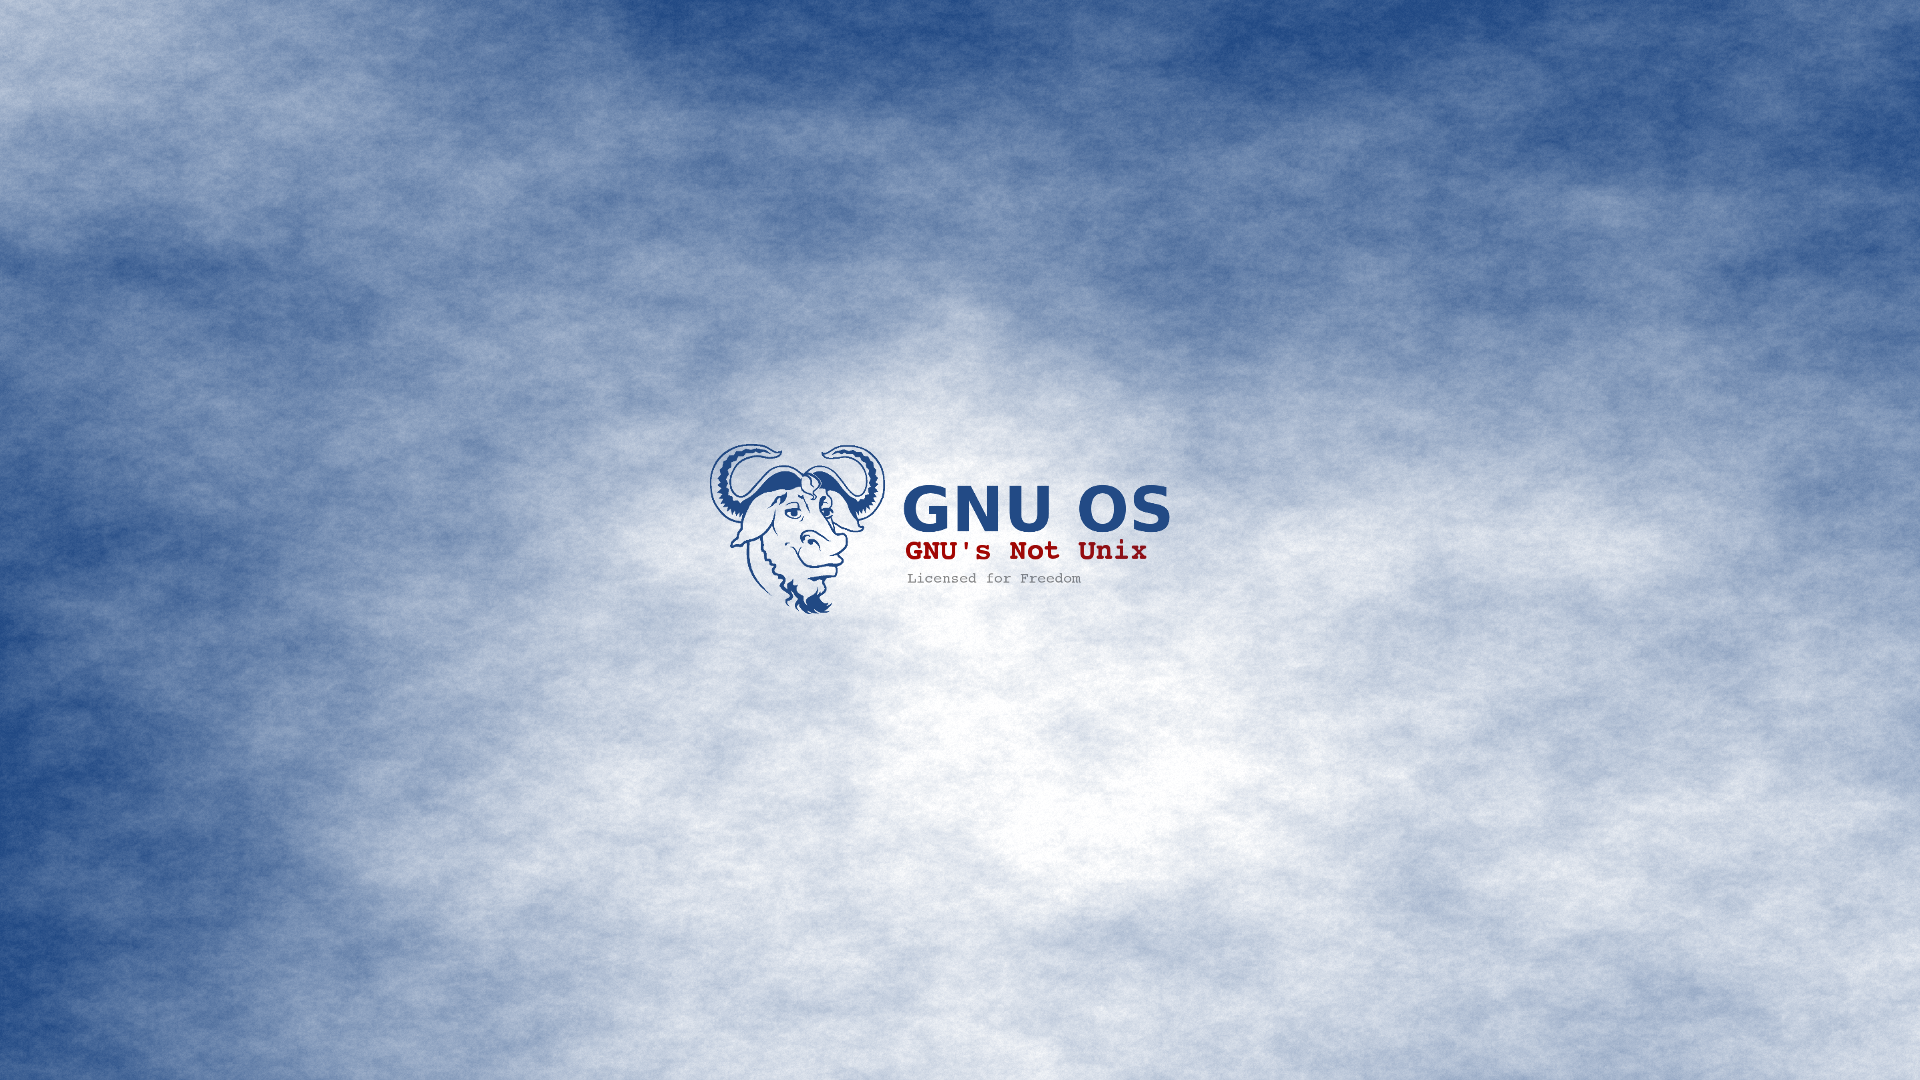 Gnu Wallpapers for Desktop (1920x1080 px, 2510.02 Kb)